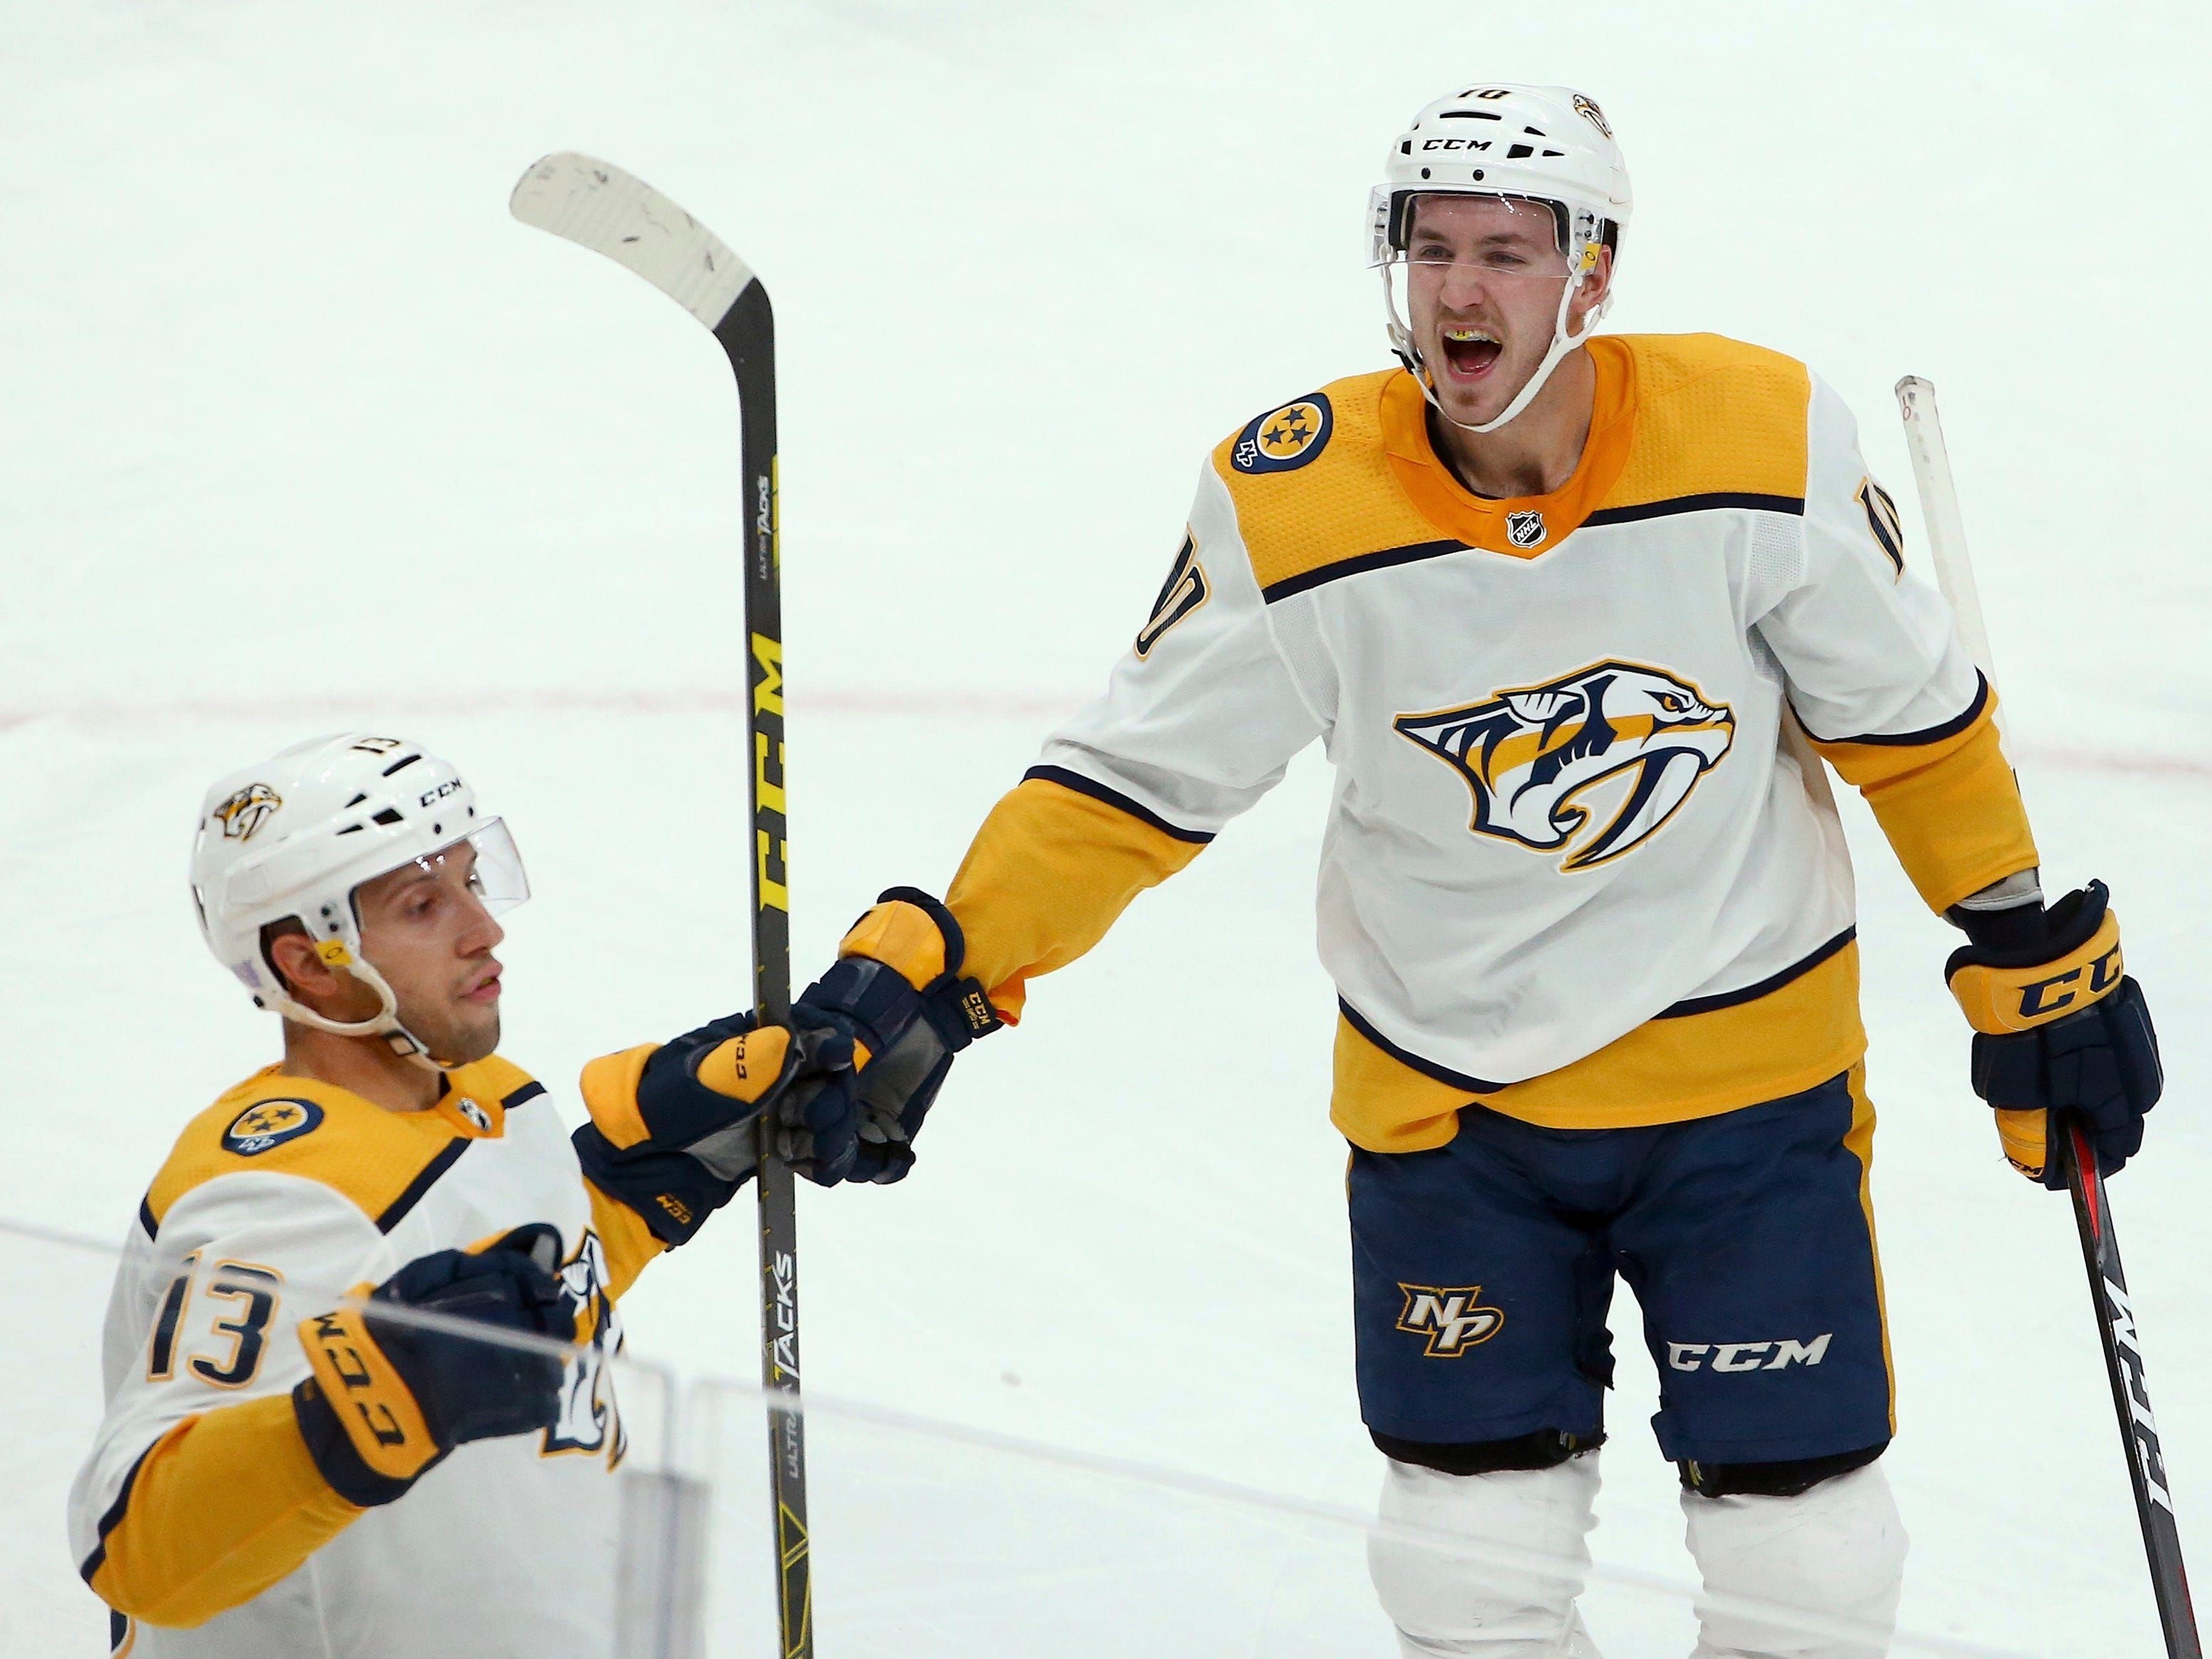 Nashville Predators center Nick Bonino (13) celebrates his goal against the Arizona Coyotes with Predators center Colton Sissons, right, during the third period of an NHL hockey game Thursday, Nov. 15, 2018, in Glendale, Ariz. The Coyotes defeated the Predators 2-1.